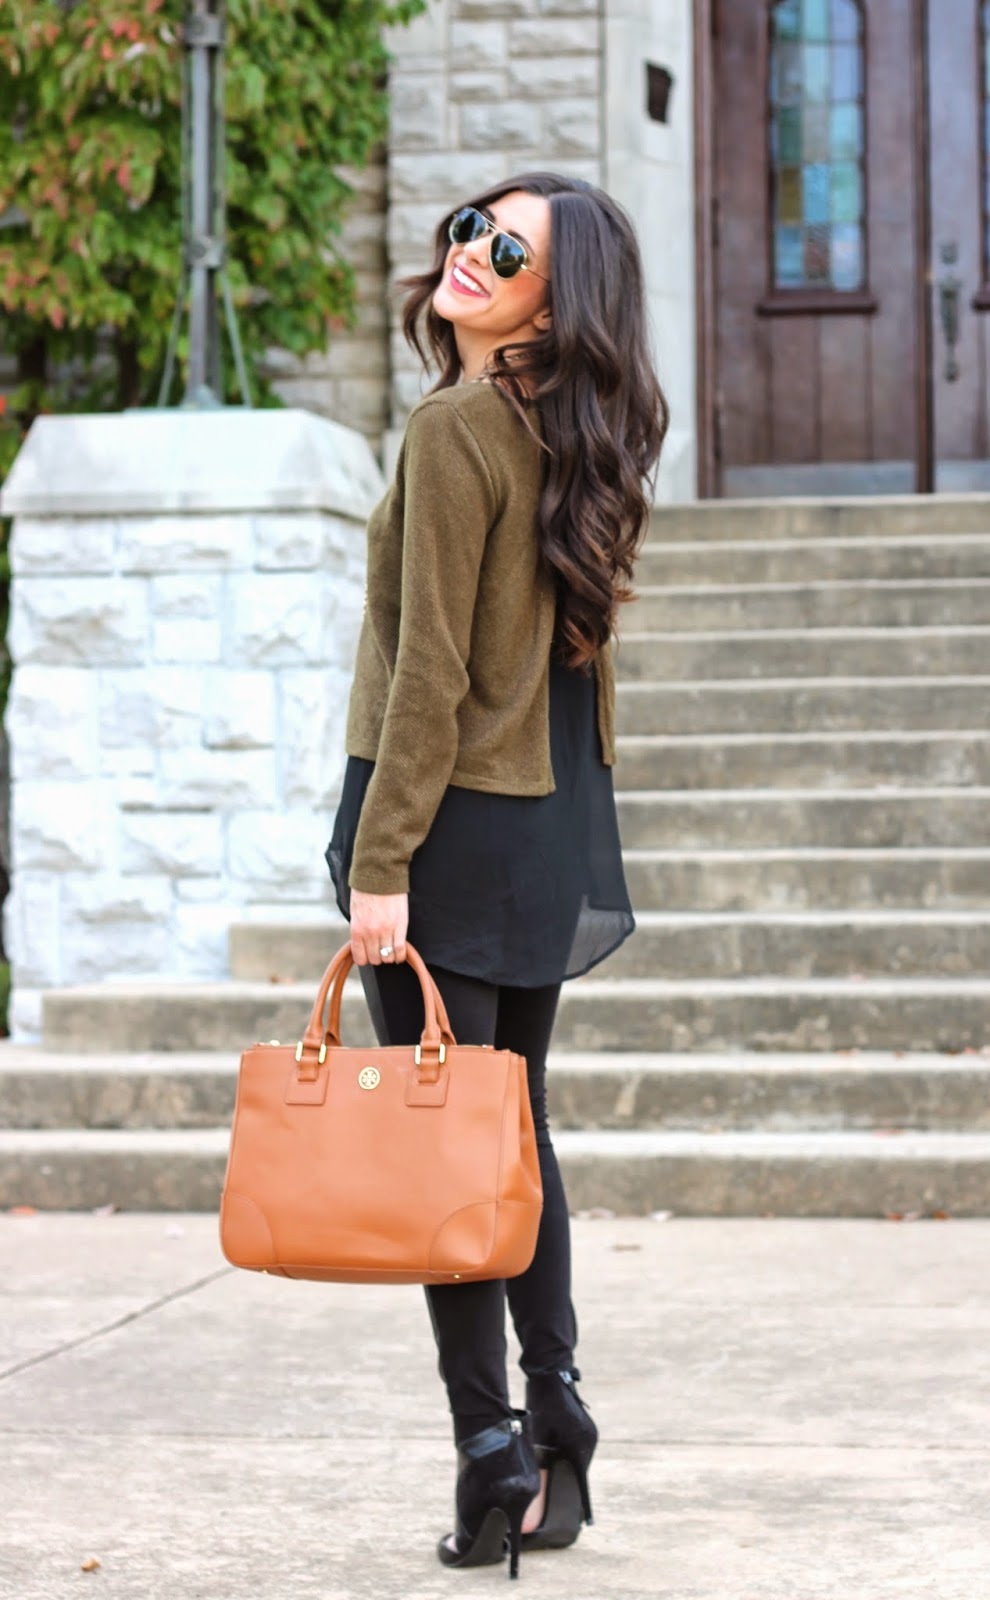 fall fashion, fall fashion 2013, leather leggings, zara leather booties, tory burch robinson, forever 21, h&m leather leggings, ray bans, emily gemma, the sweetest thing blog, how to wear leather leggings, black booties, tory burch